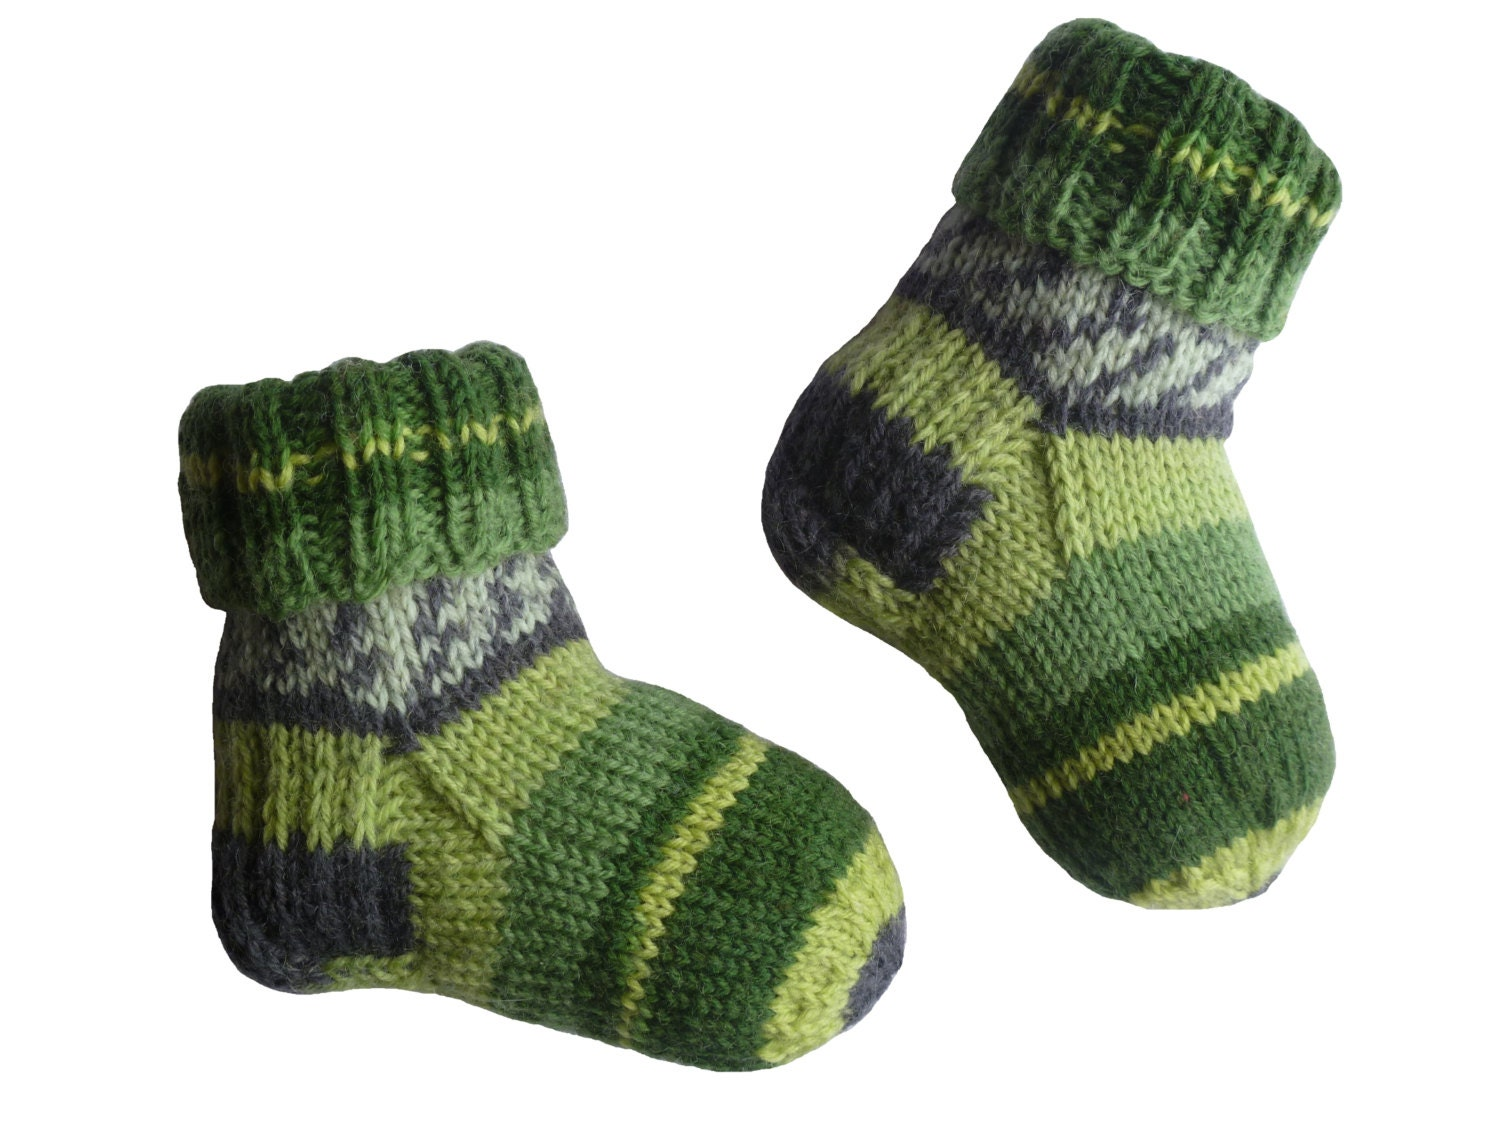 Your baby's feet & legs will never be cold again with these long merino wool socks designed especially for chubby little legs! Plain baby socks with no labels or logos. 1 pair for $14 or 2 for $26!